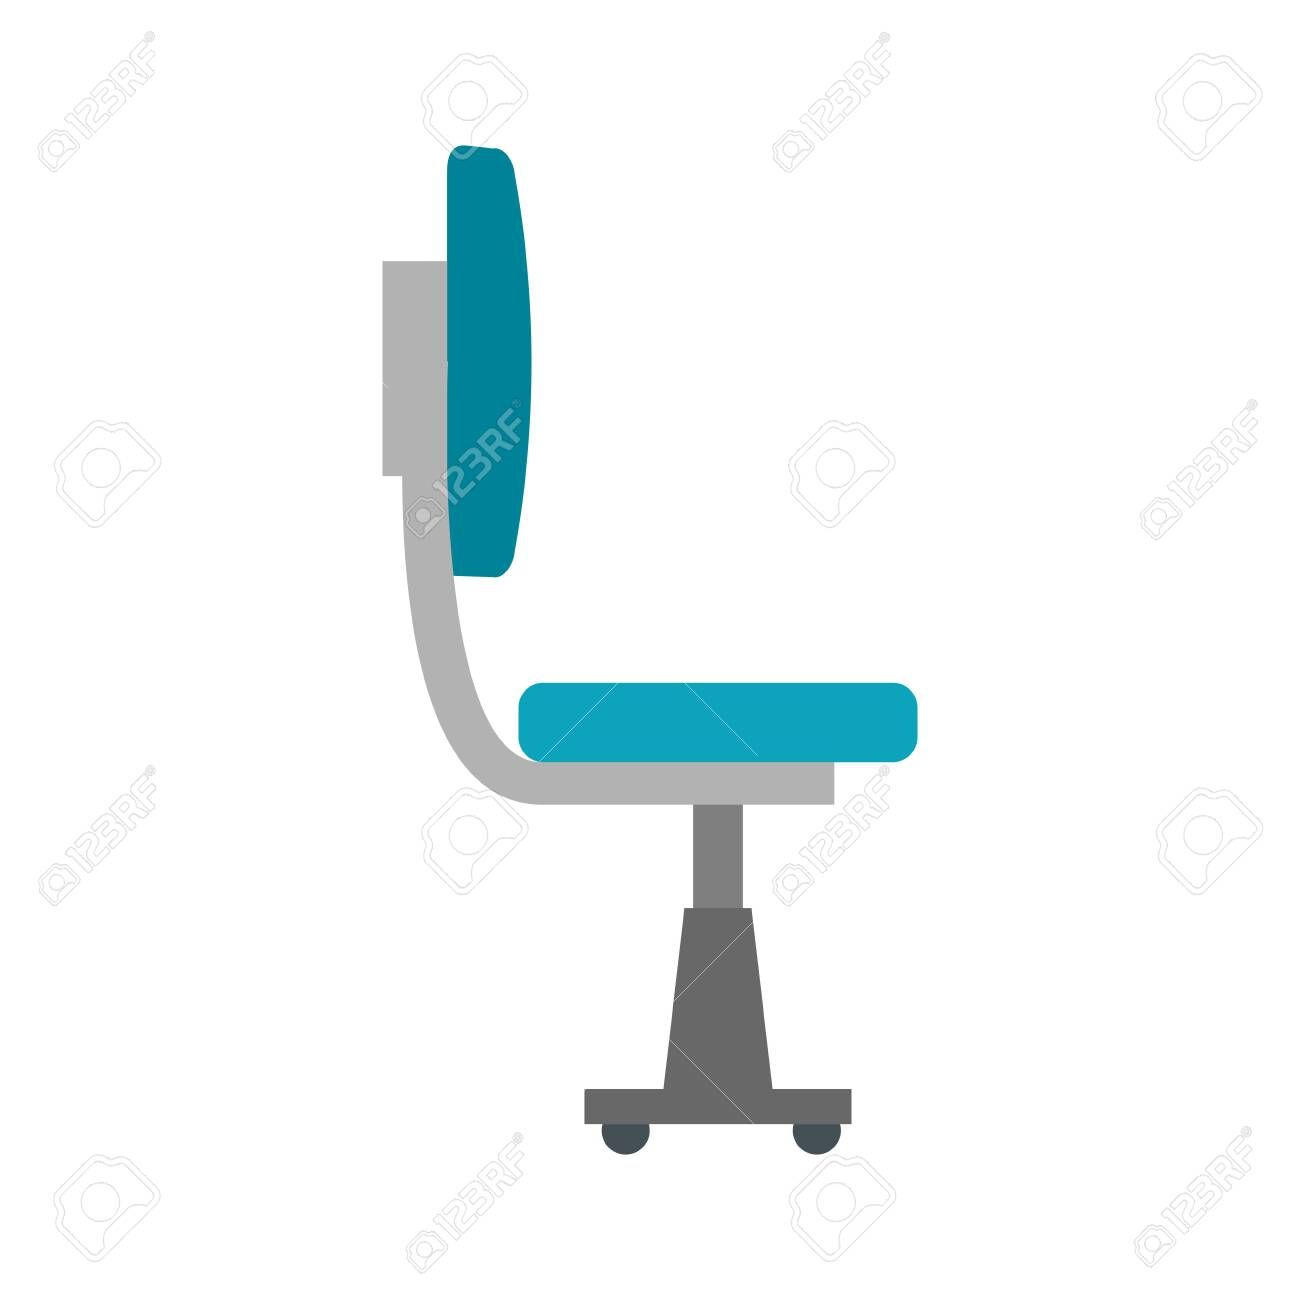 Office Chair Equipment Isolated Icon Vector Illustration Design Illustration Spon Equipment Vector Illustration Design Visual Design Illustration Design